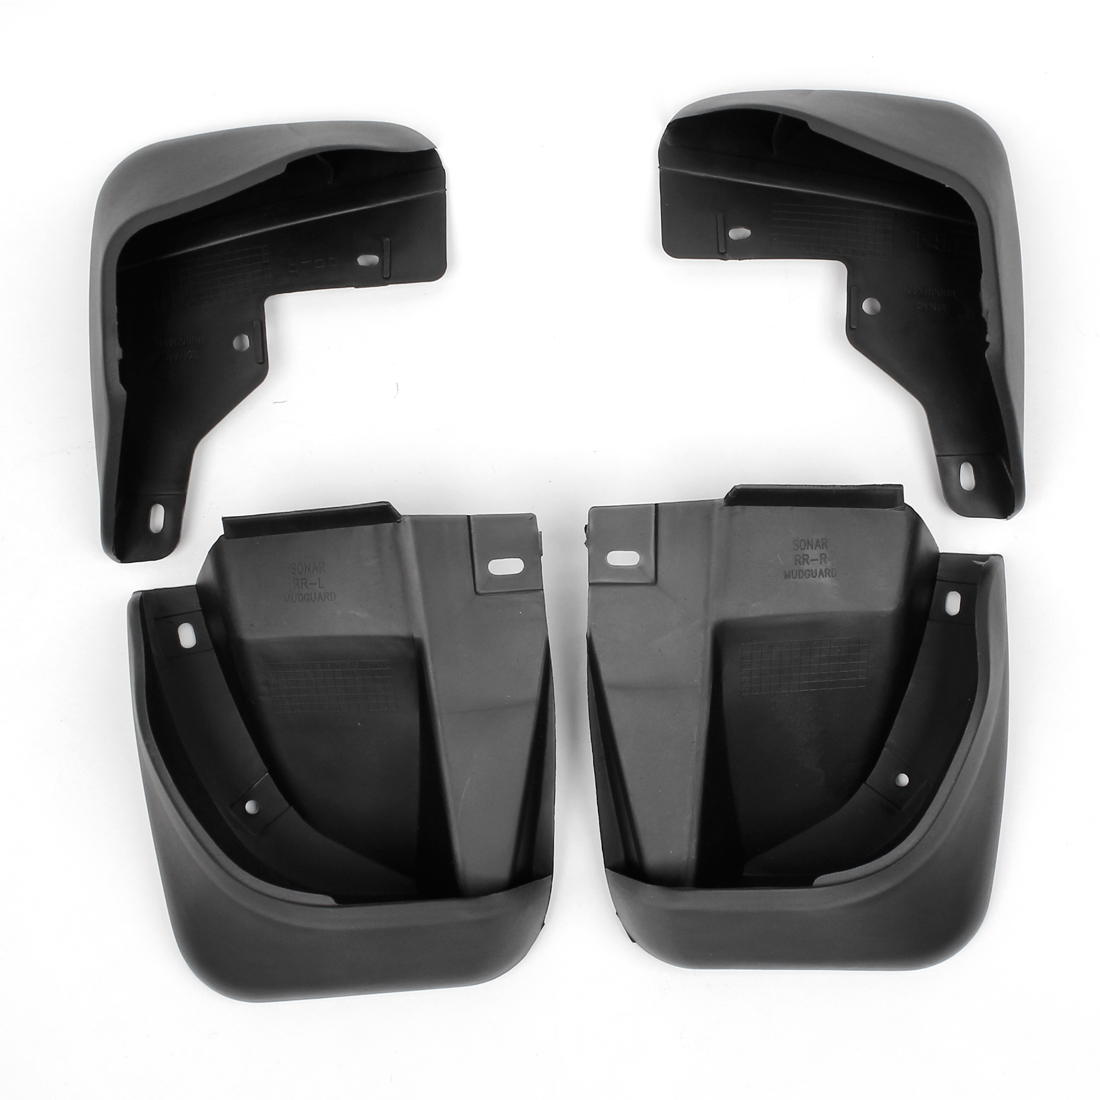 4 in 1 Splash Guards Front Rear Mud Flaps Protectors Set for  Accord 2.3